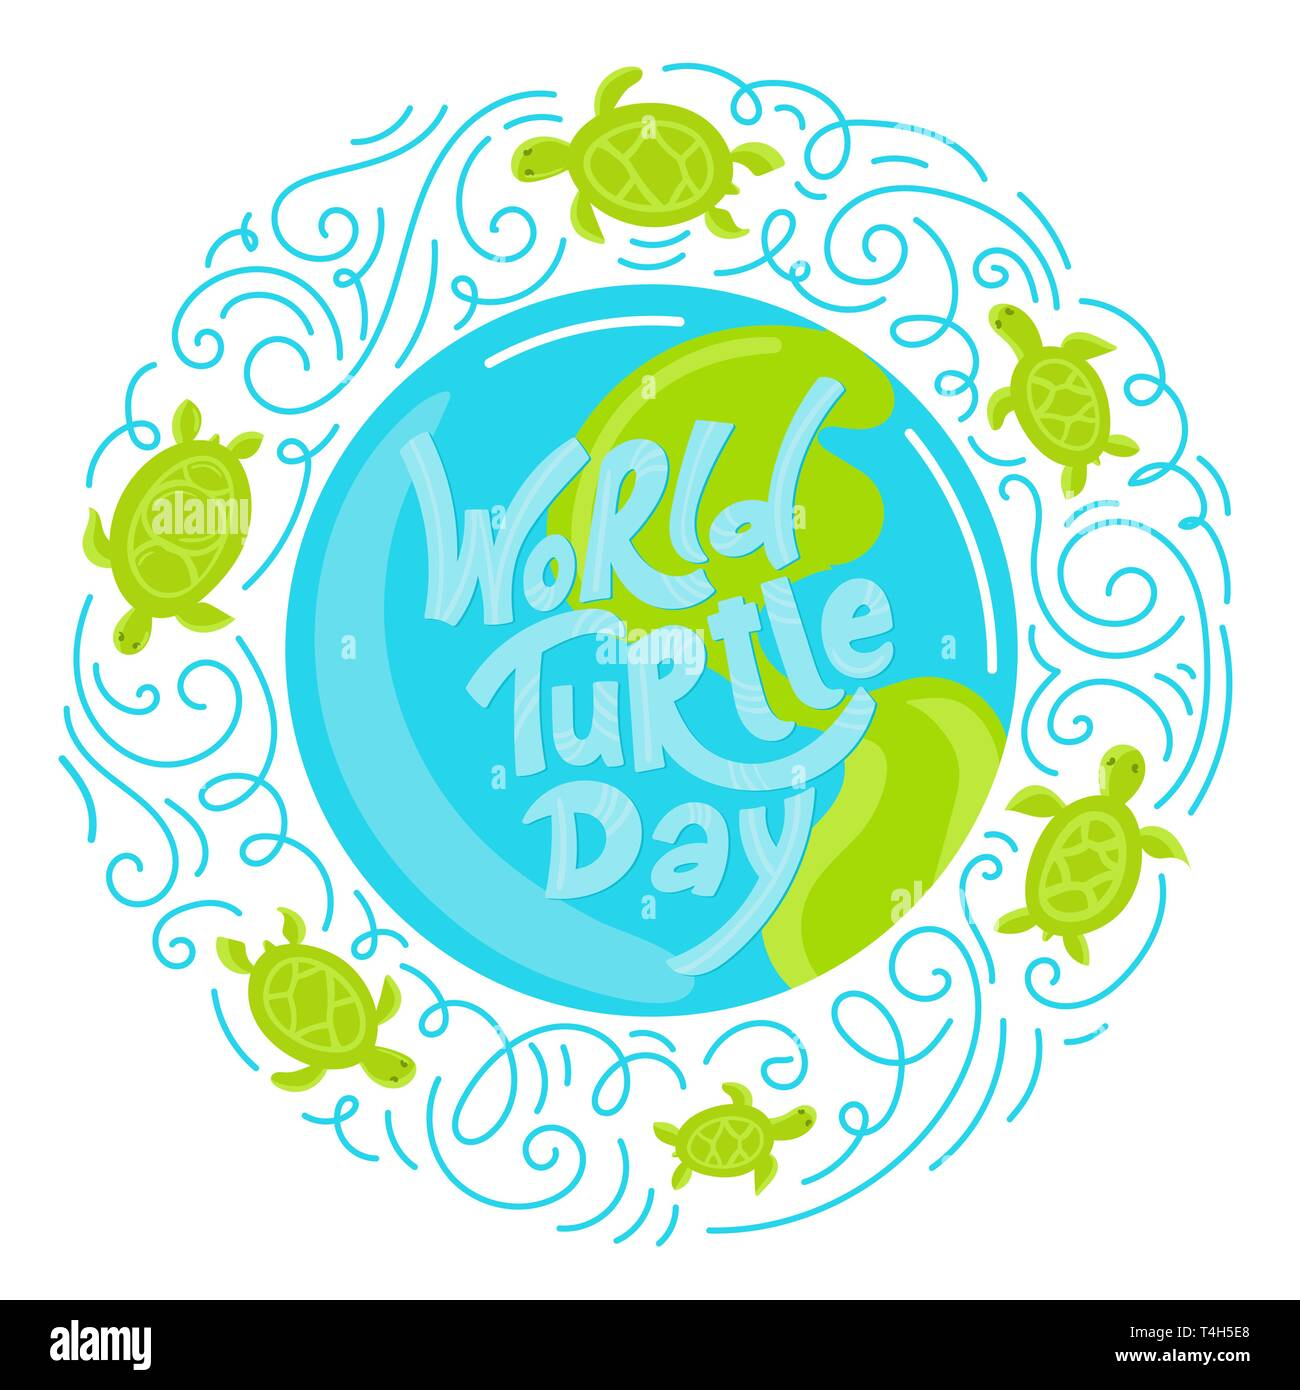 World Turtle Day 23 May background. Lettering with hand drawn elements. Modern doodle style. Vector illustration. - Stock Vector